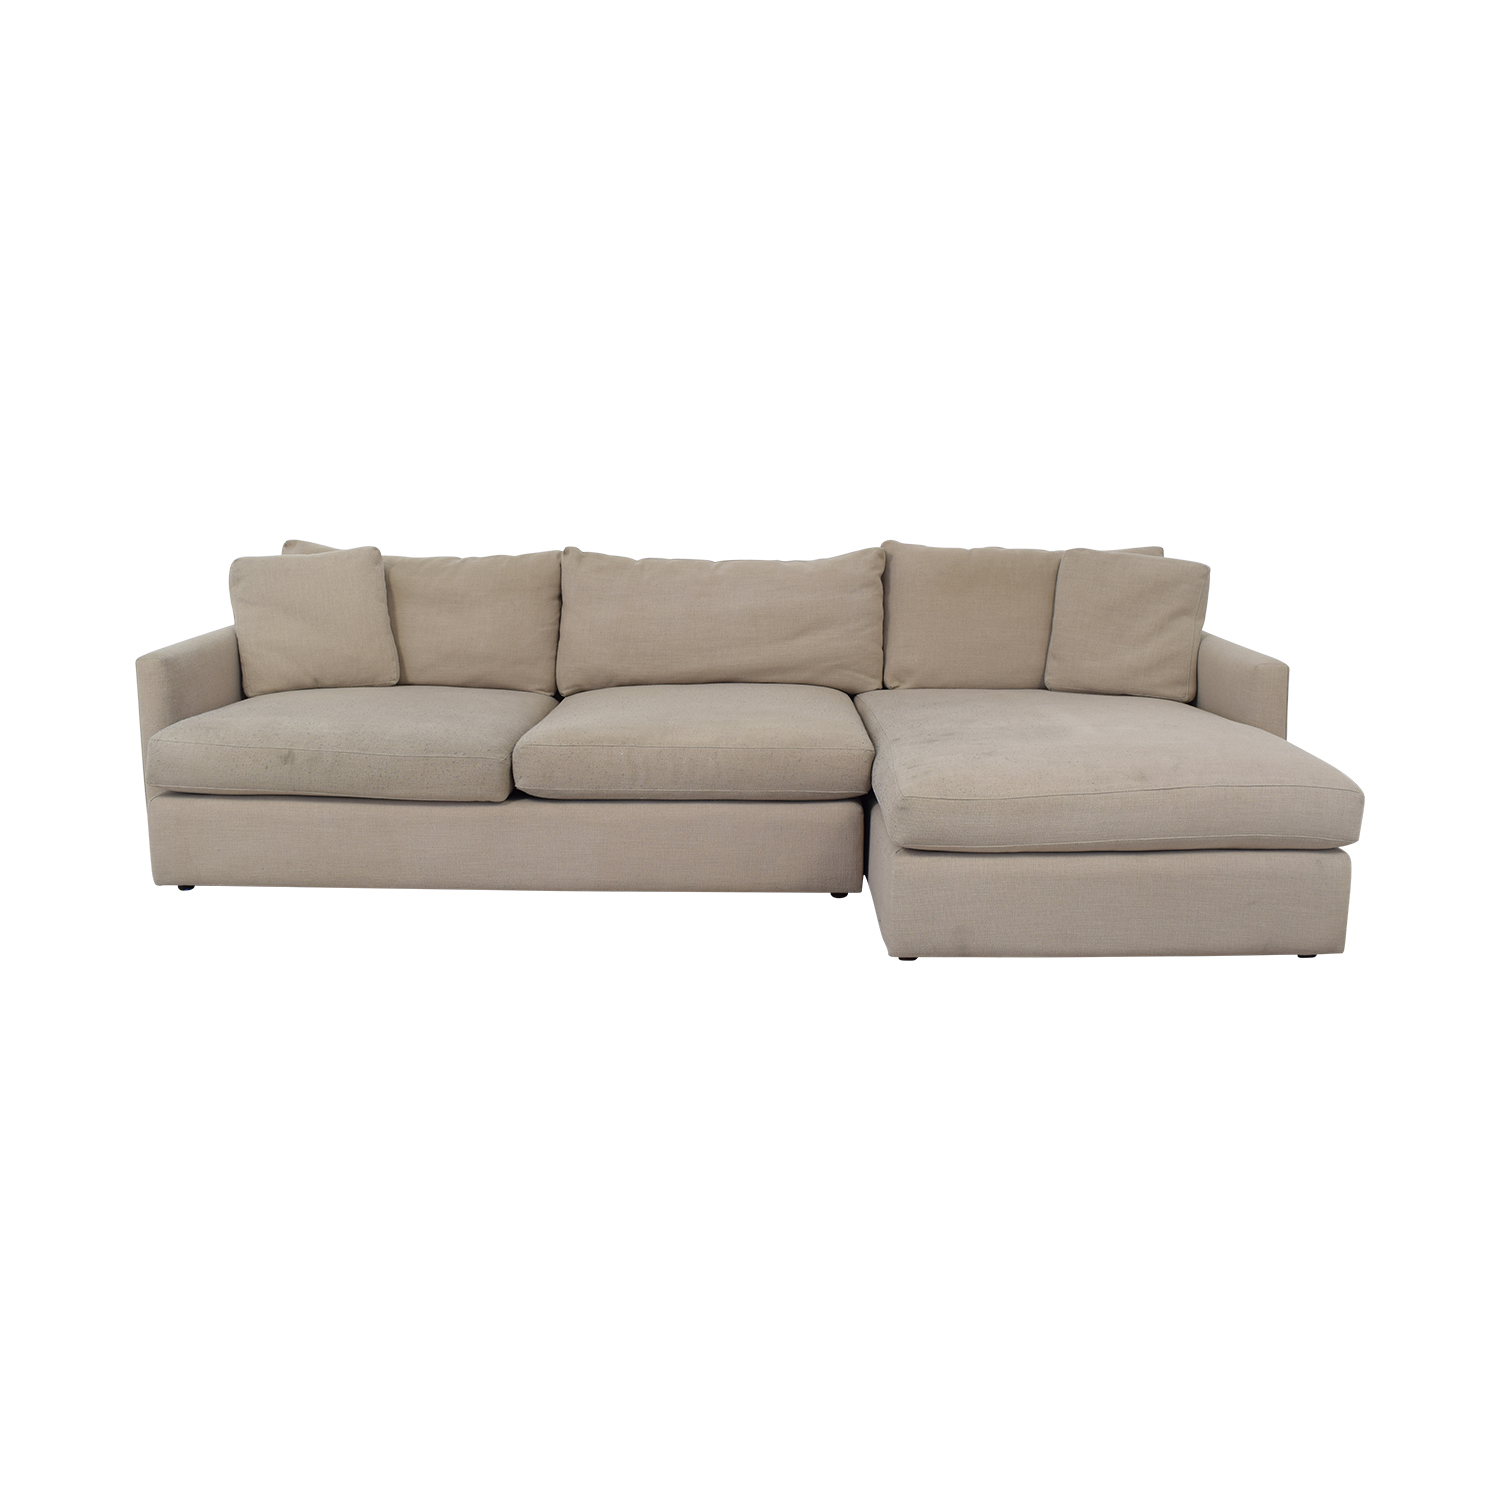 Crate & Barrel Crate & Barrel Sectional Sofa